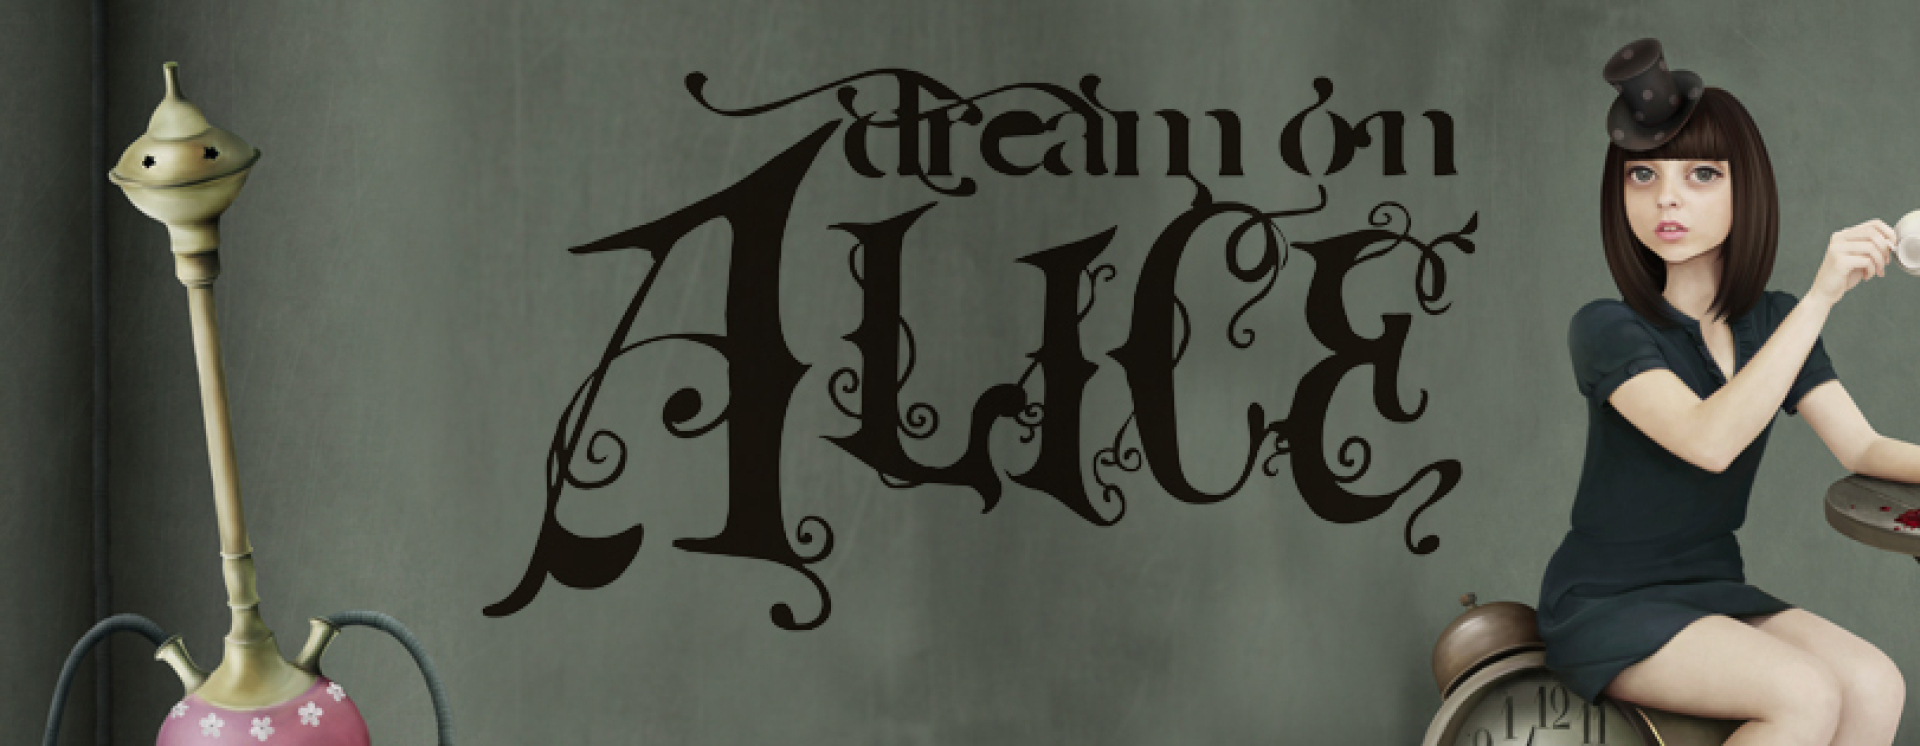 1397759609 dream on alice facebook header copy